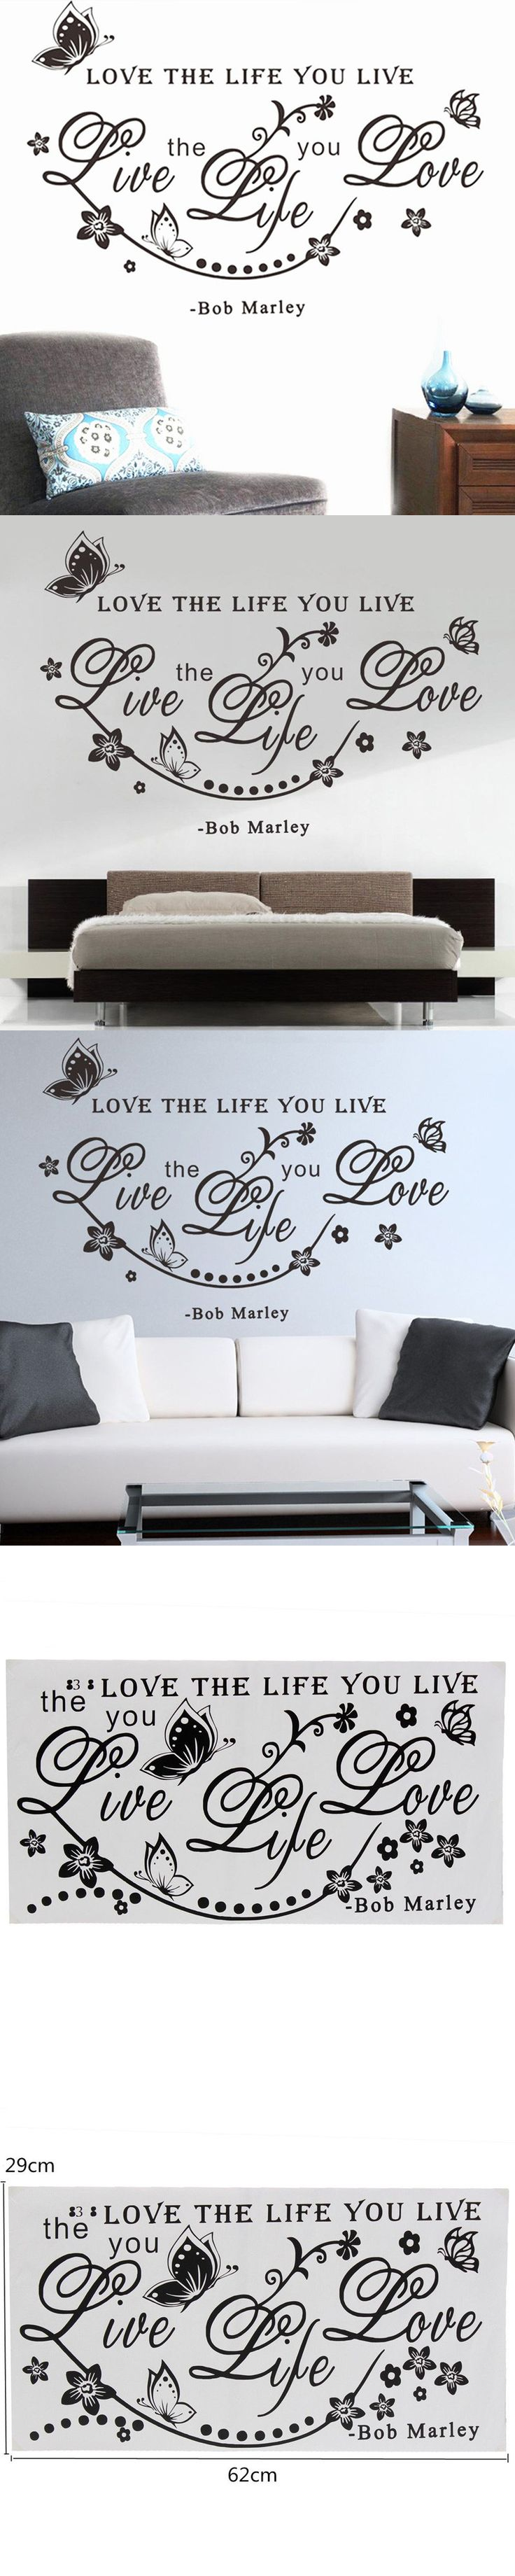 2pcs/lot Removable Wall Stickers Famous U0026 Inspirational Quote Decal Art  Vinyl Butterfly Wall Sticker Home Decor Size 29 X 62cm